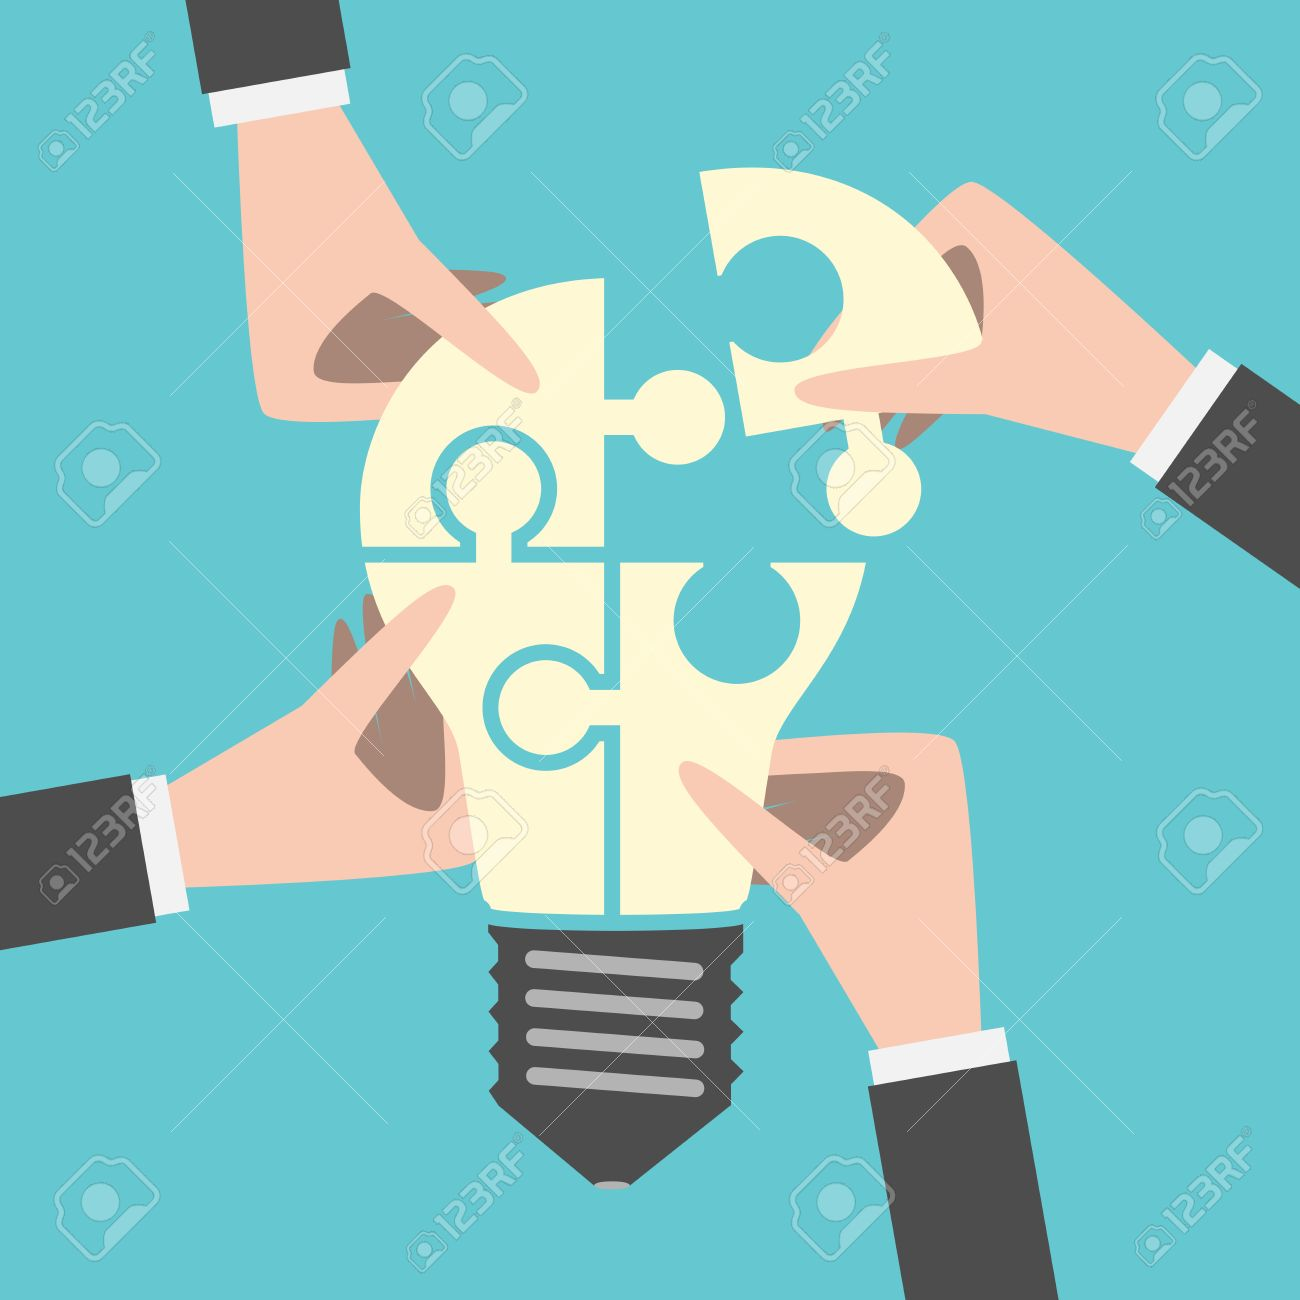 Four hands putting together light bulb shaped puzzle. Teamwork, team, idea, business, solution, creativity concept. Flat style. - 53685079